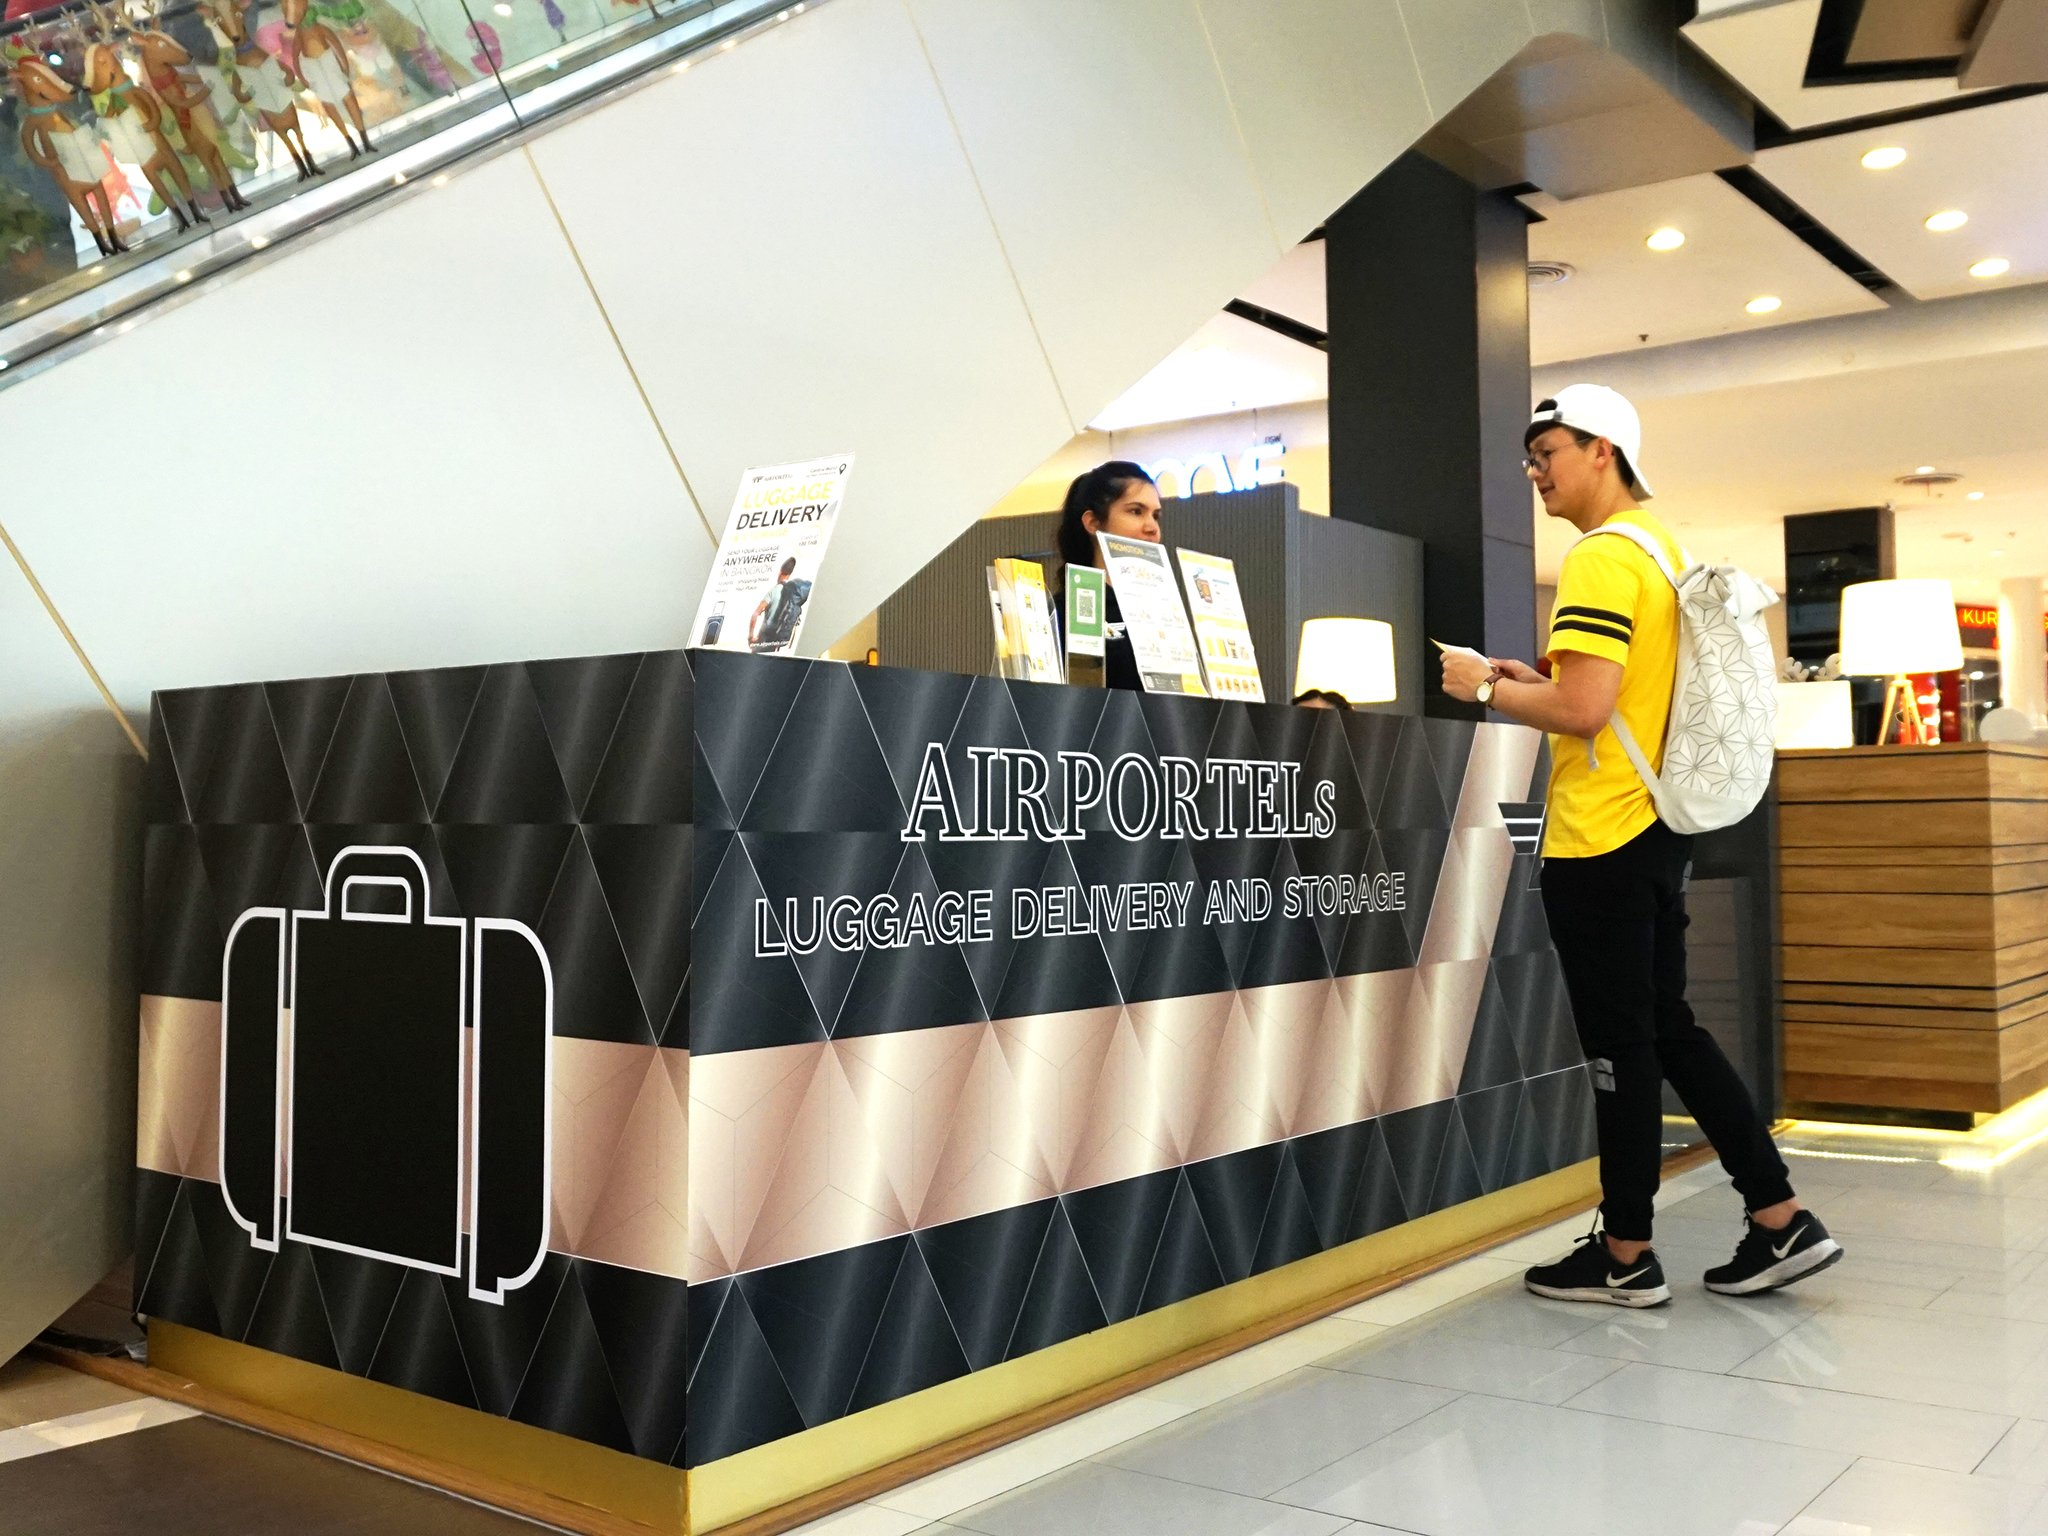 ctw,airportels,luggage deposit,luggage delivery,luggage storage, Central World Luggage Delivery